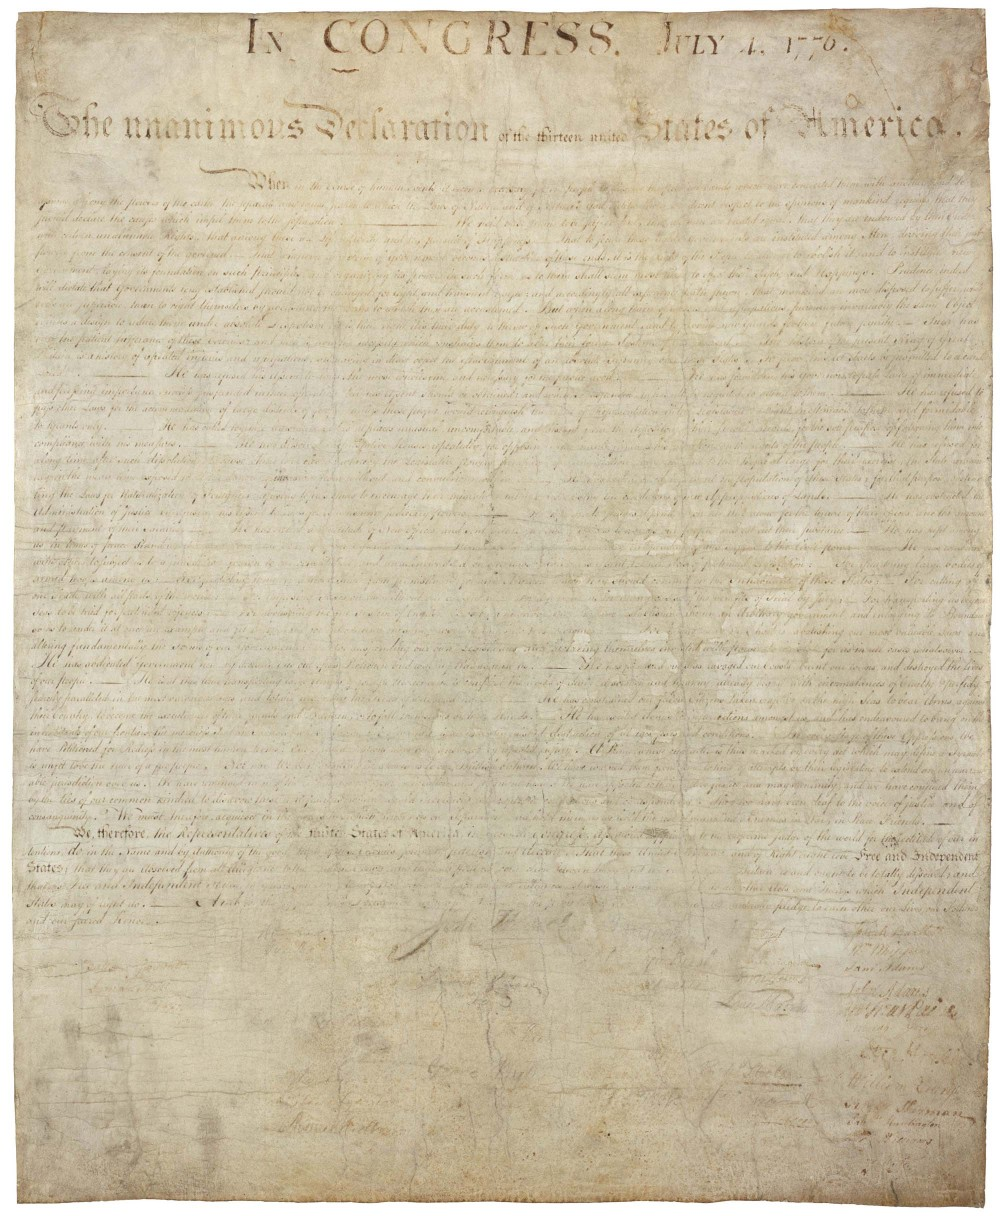 The Declaration of Independence, National Archives and Records Administration.